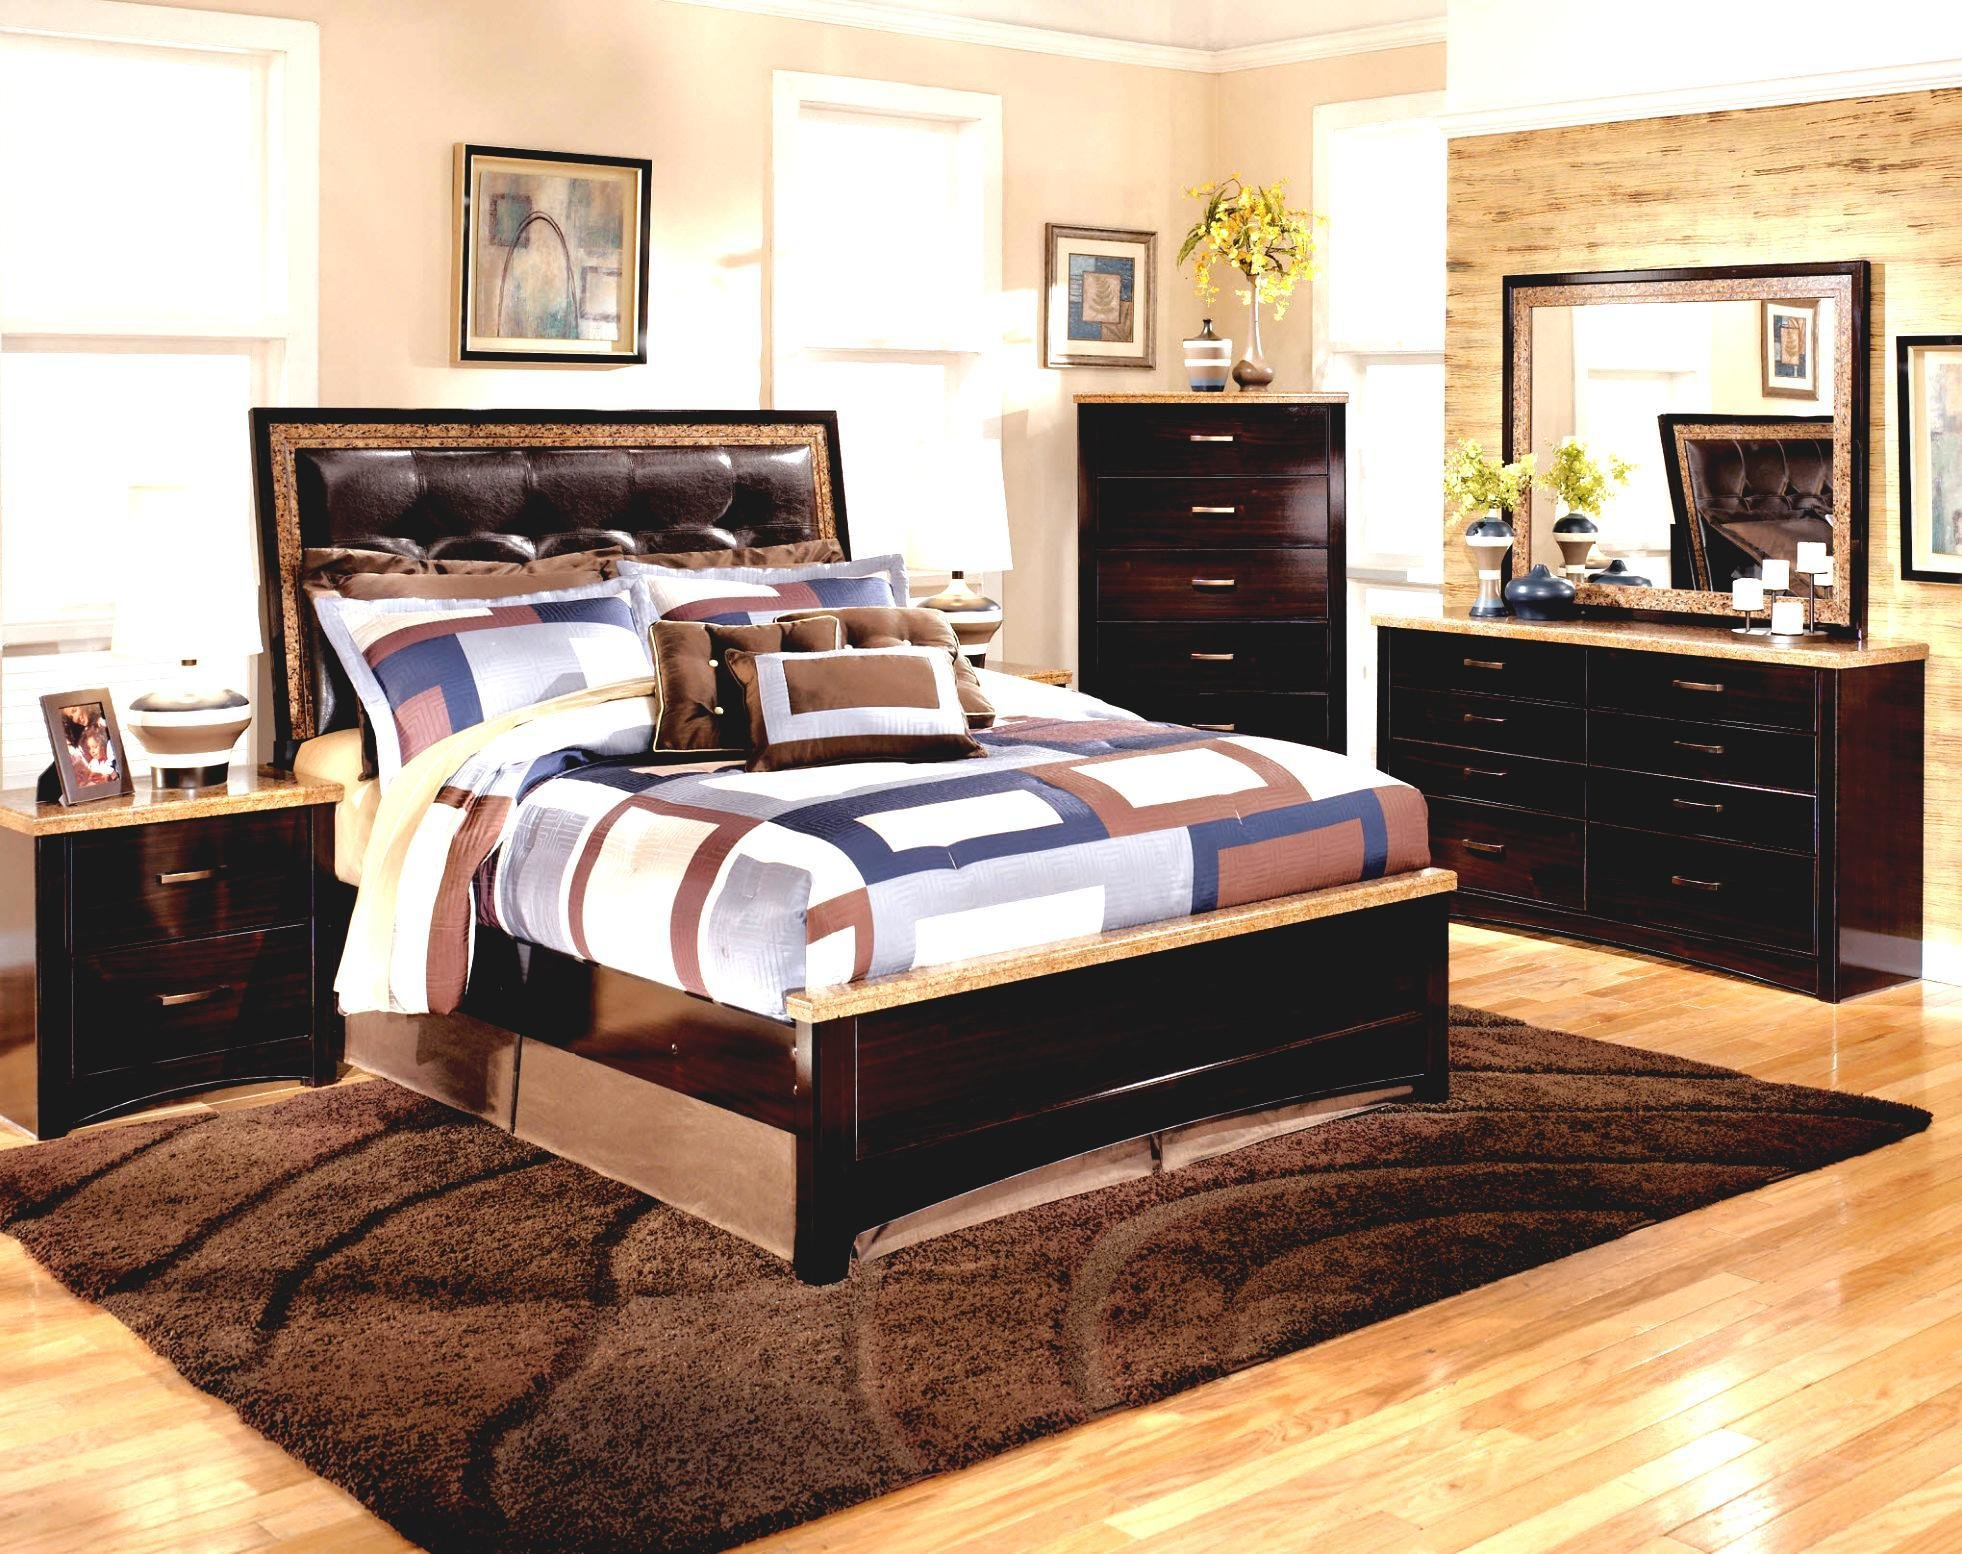 Best Offer For Inexpensive Bedroom Furniture Sale With Pictures